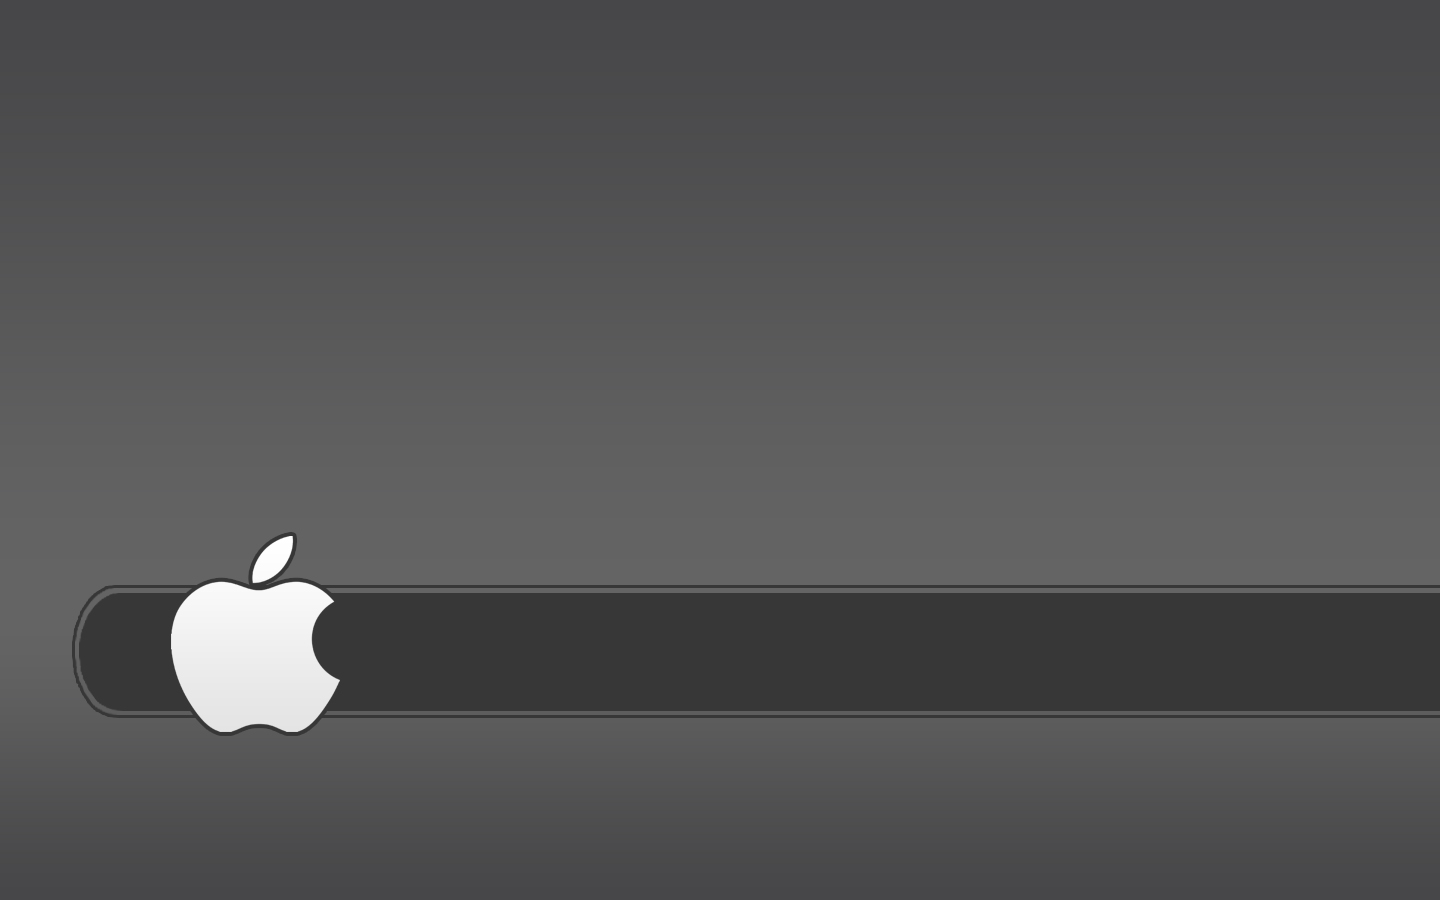 apple images apple logo hd wallpaper and background photos (41150